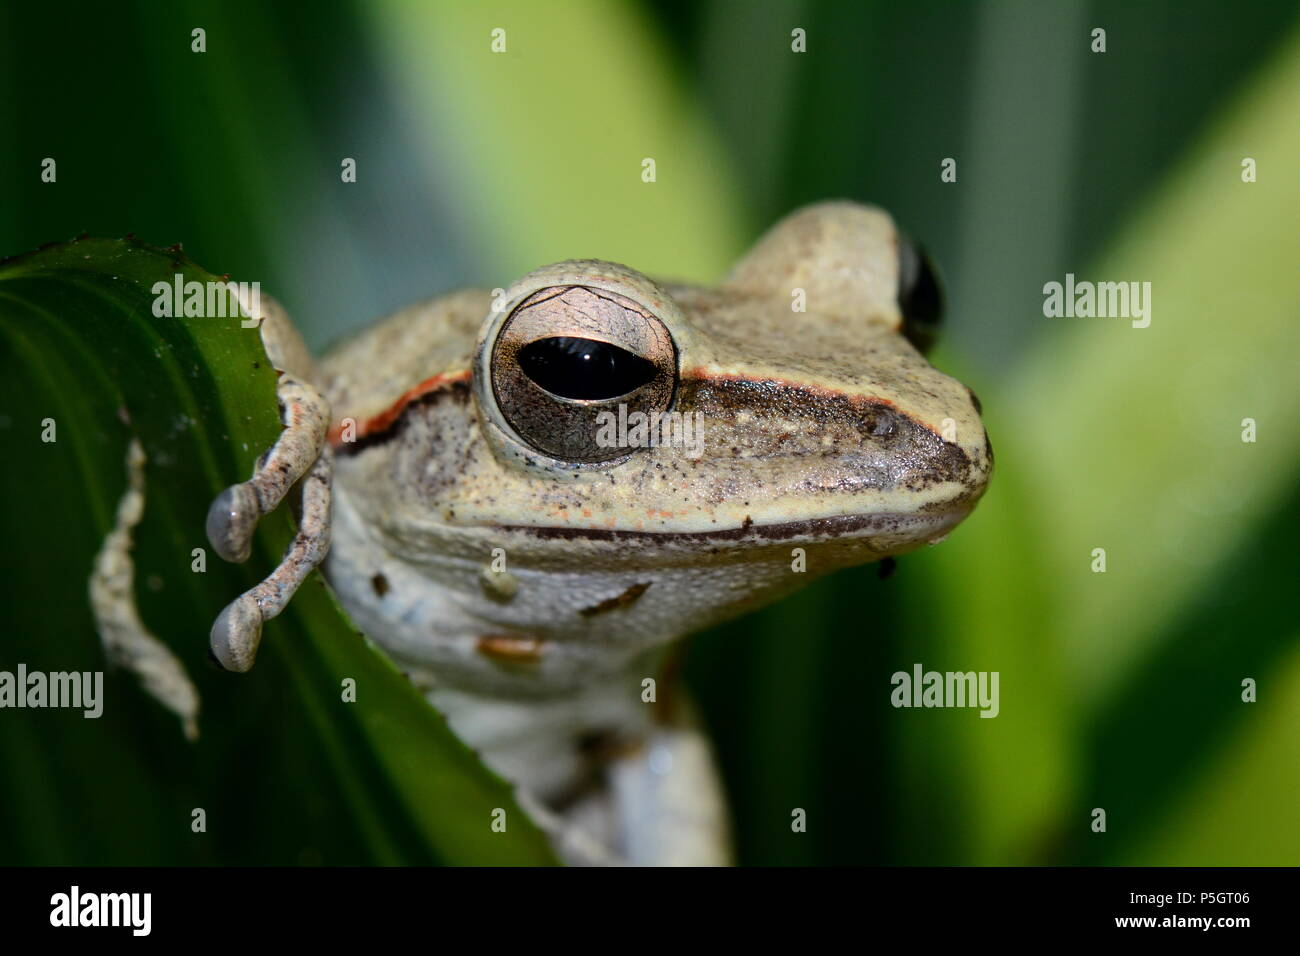 A tree frog poses for the camera in the gardens. Stock Photo